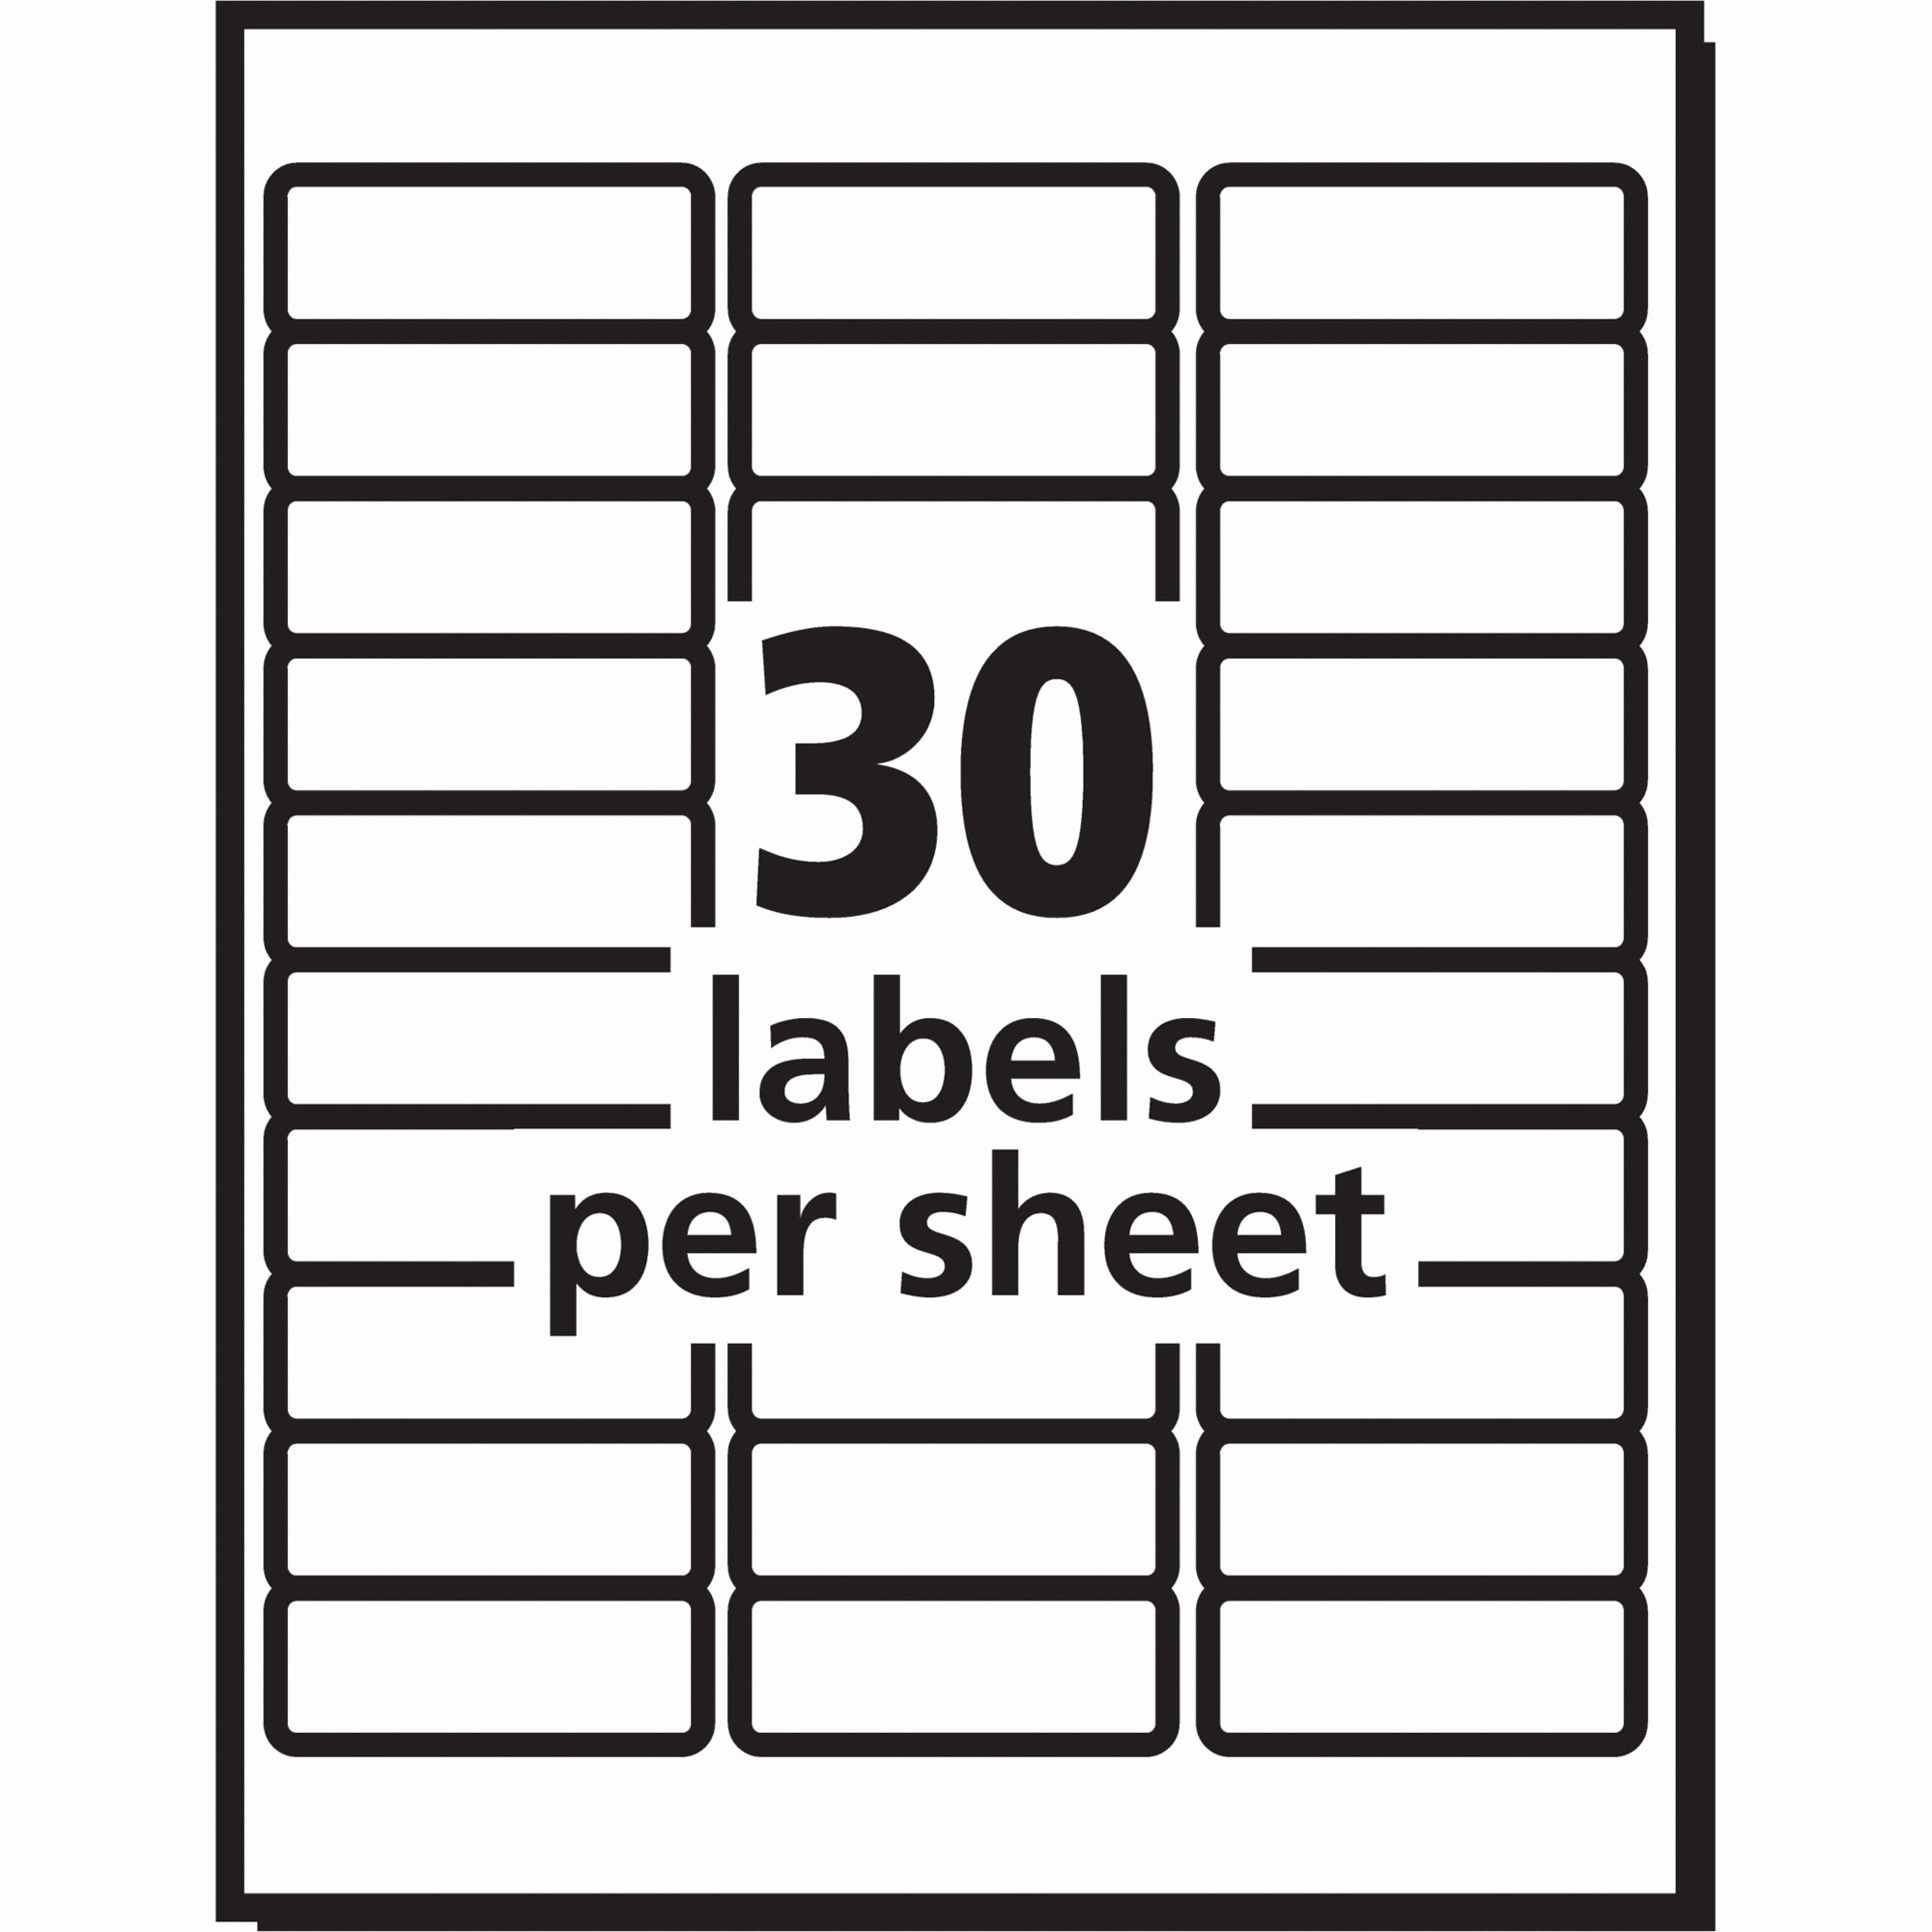 Avery 30 Per Sheet Labels Lovely Label Template 40 Per Sheet